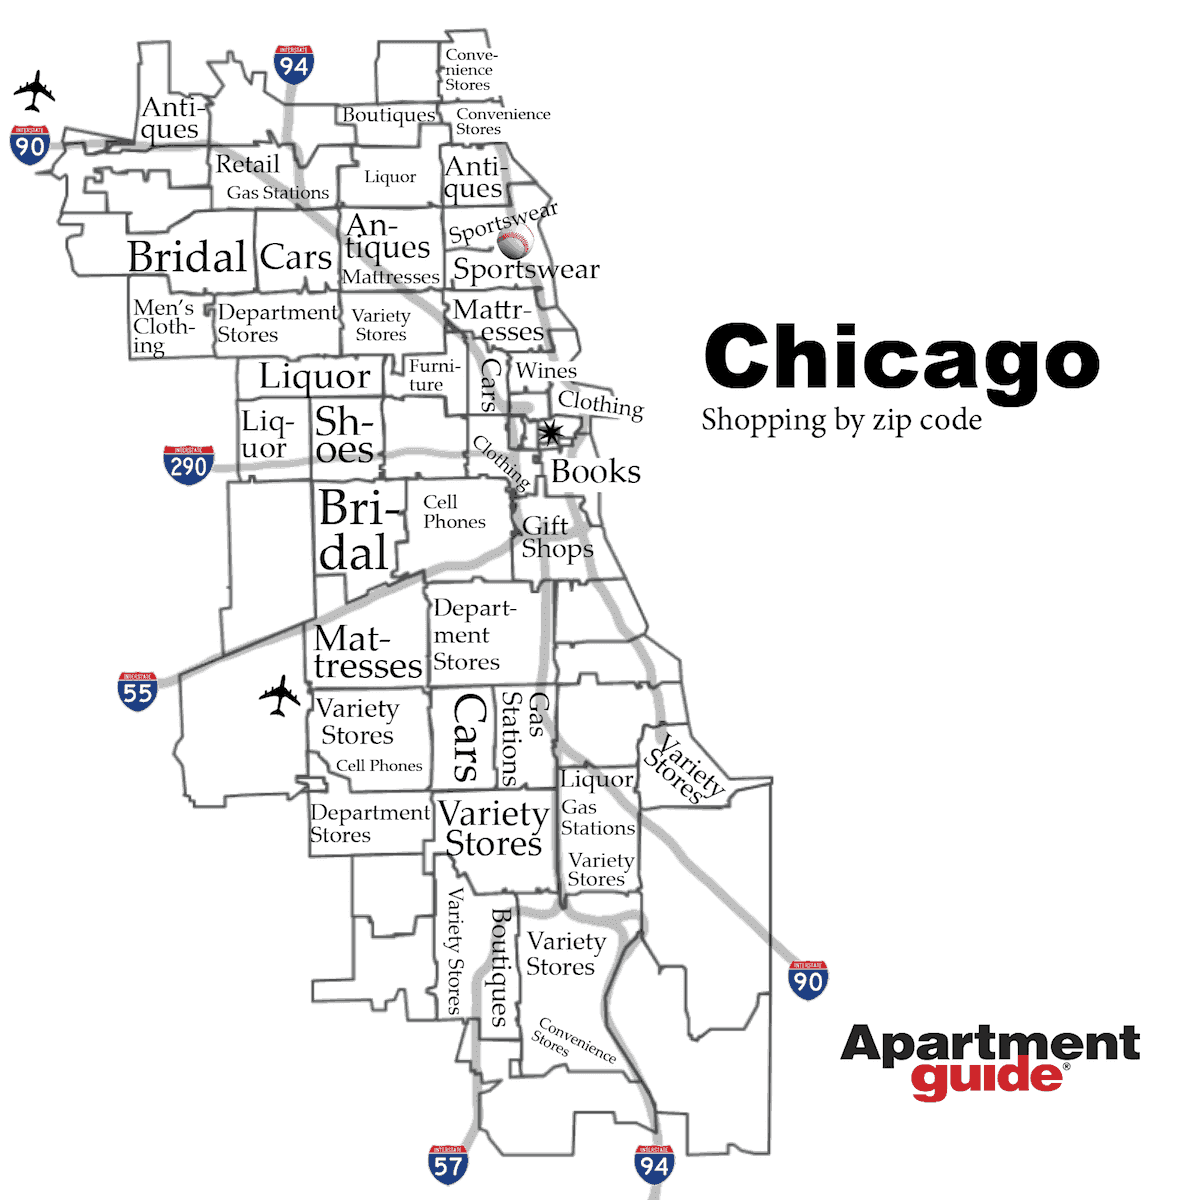 chicago shopping by zip code